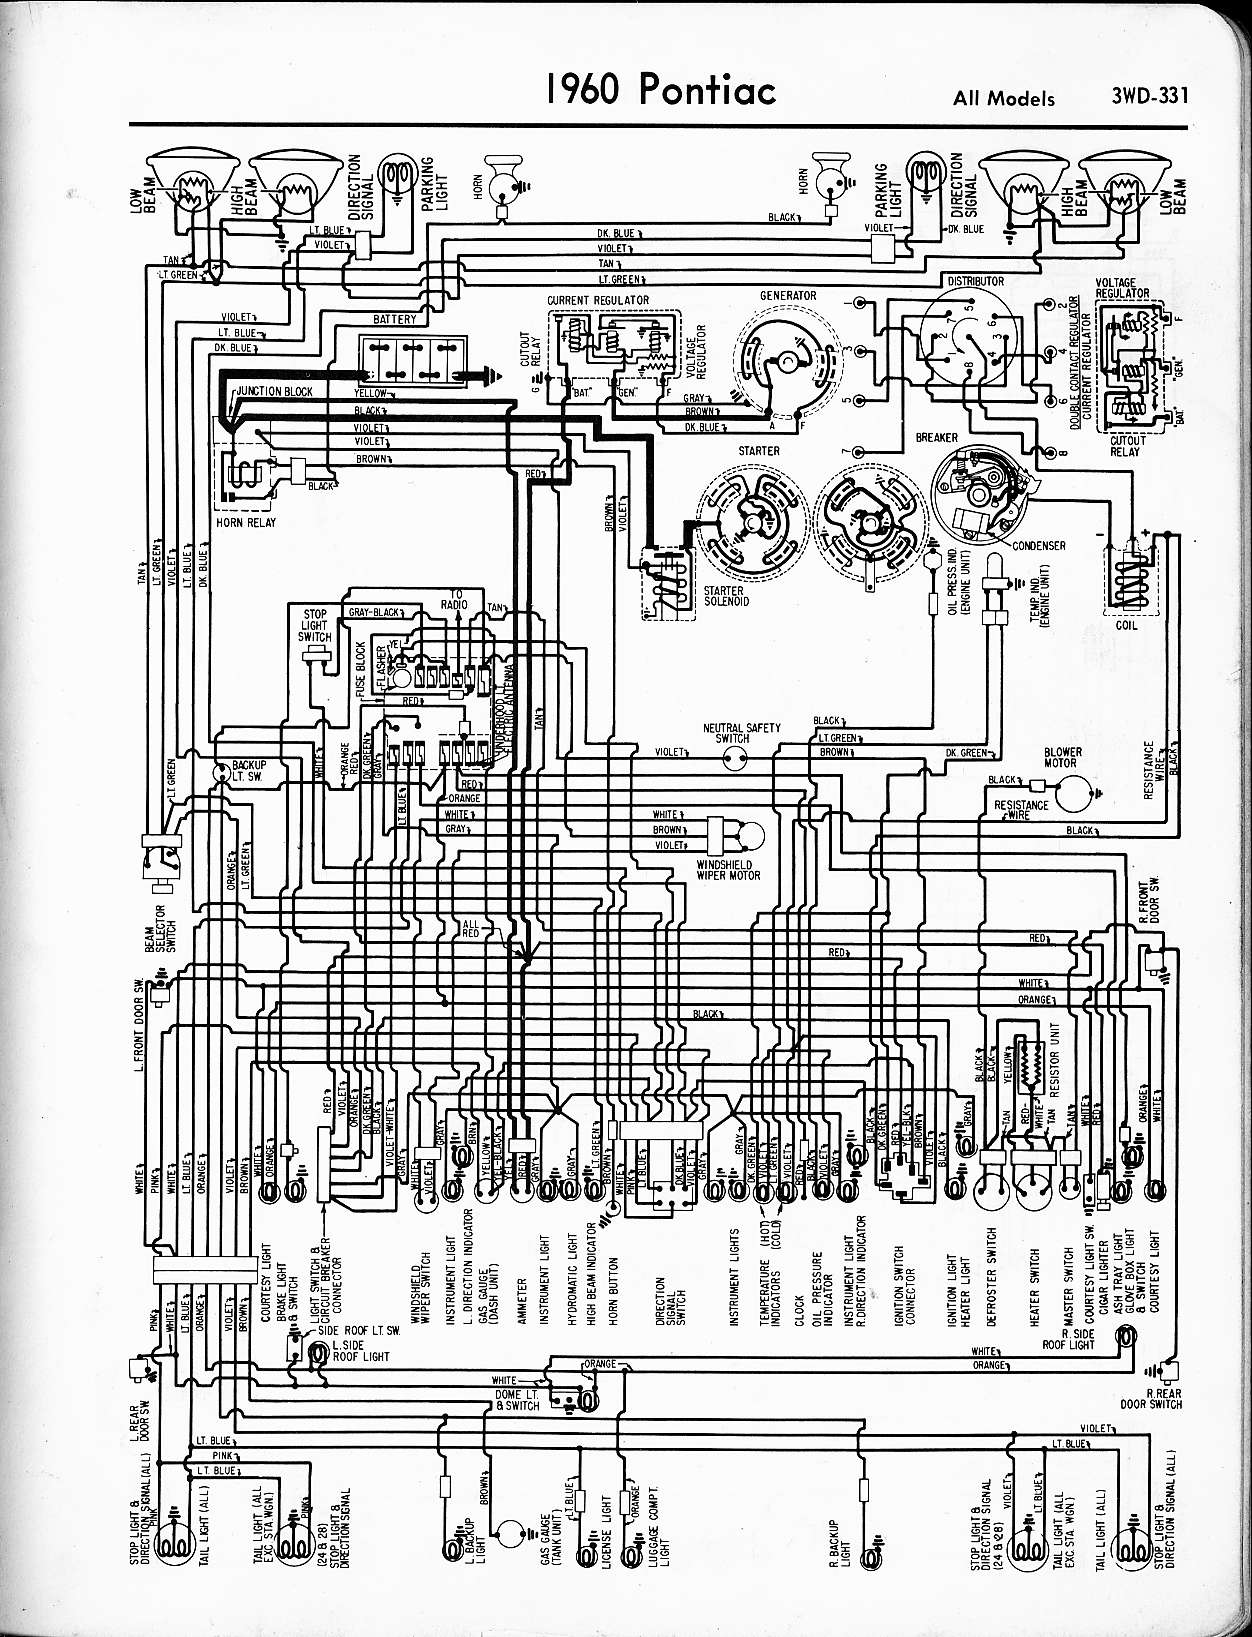 pontiac ventura wiring custom wiring diagram \u2022 1970 buick gs pontiac ventura wiring car wiring diagrams explained u2022 rh ethermag co buick gs buick apollo